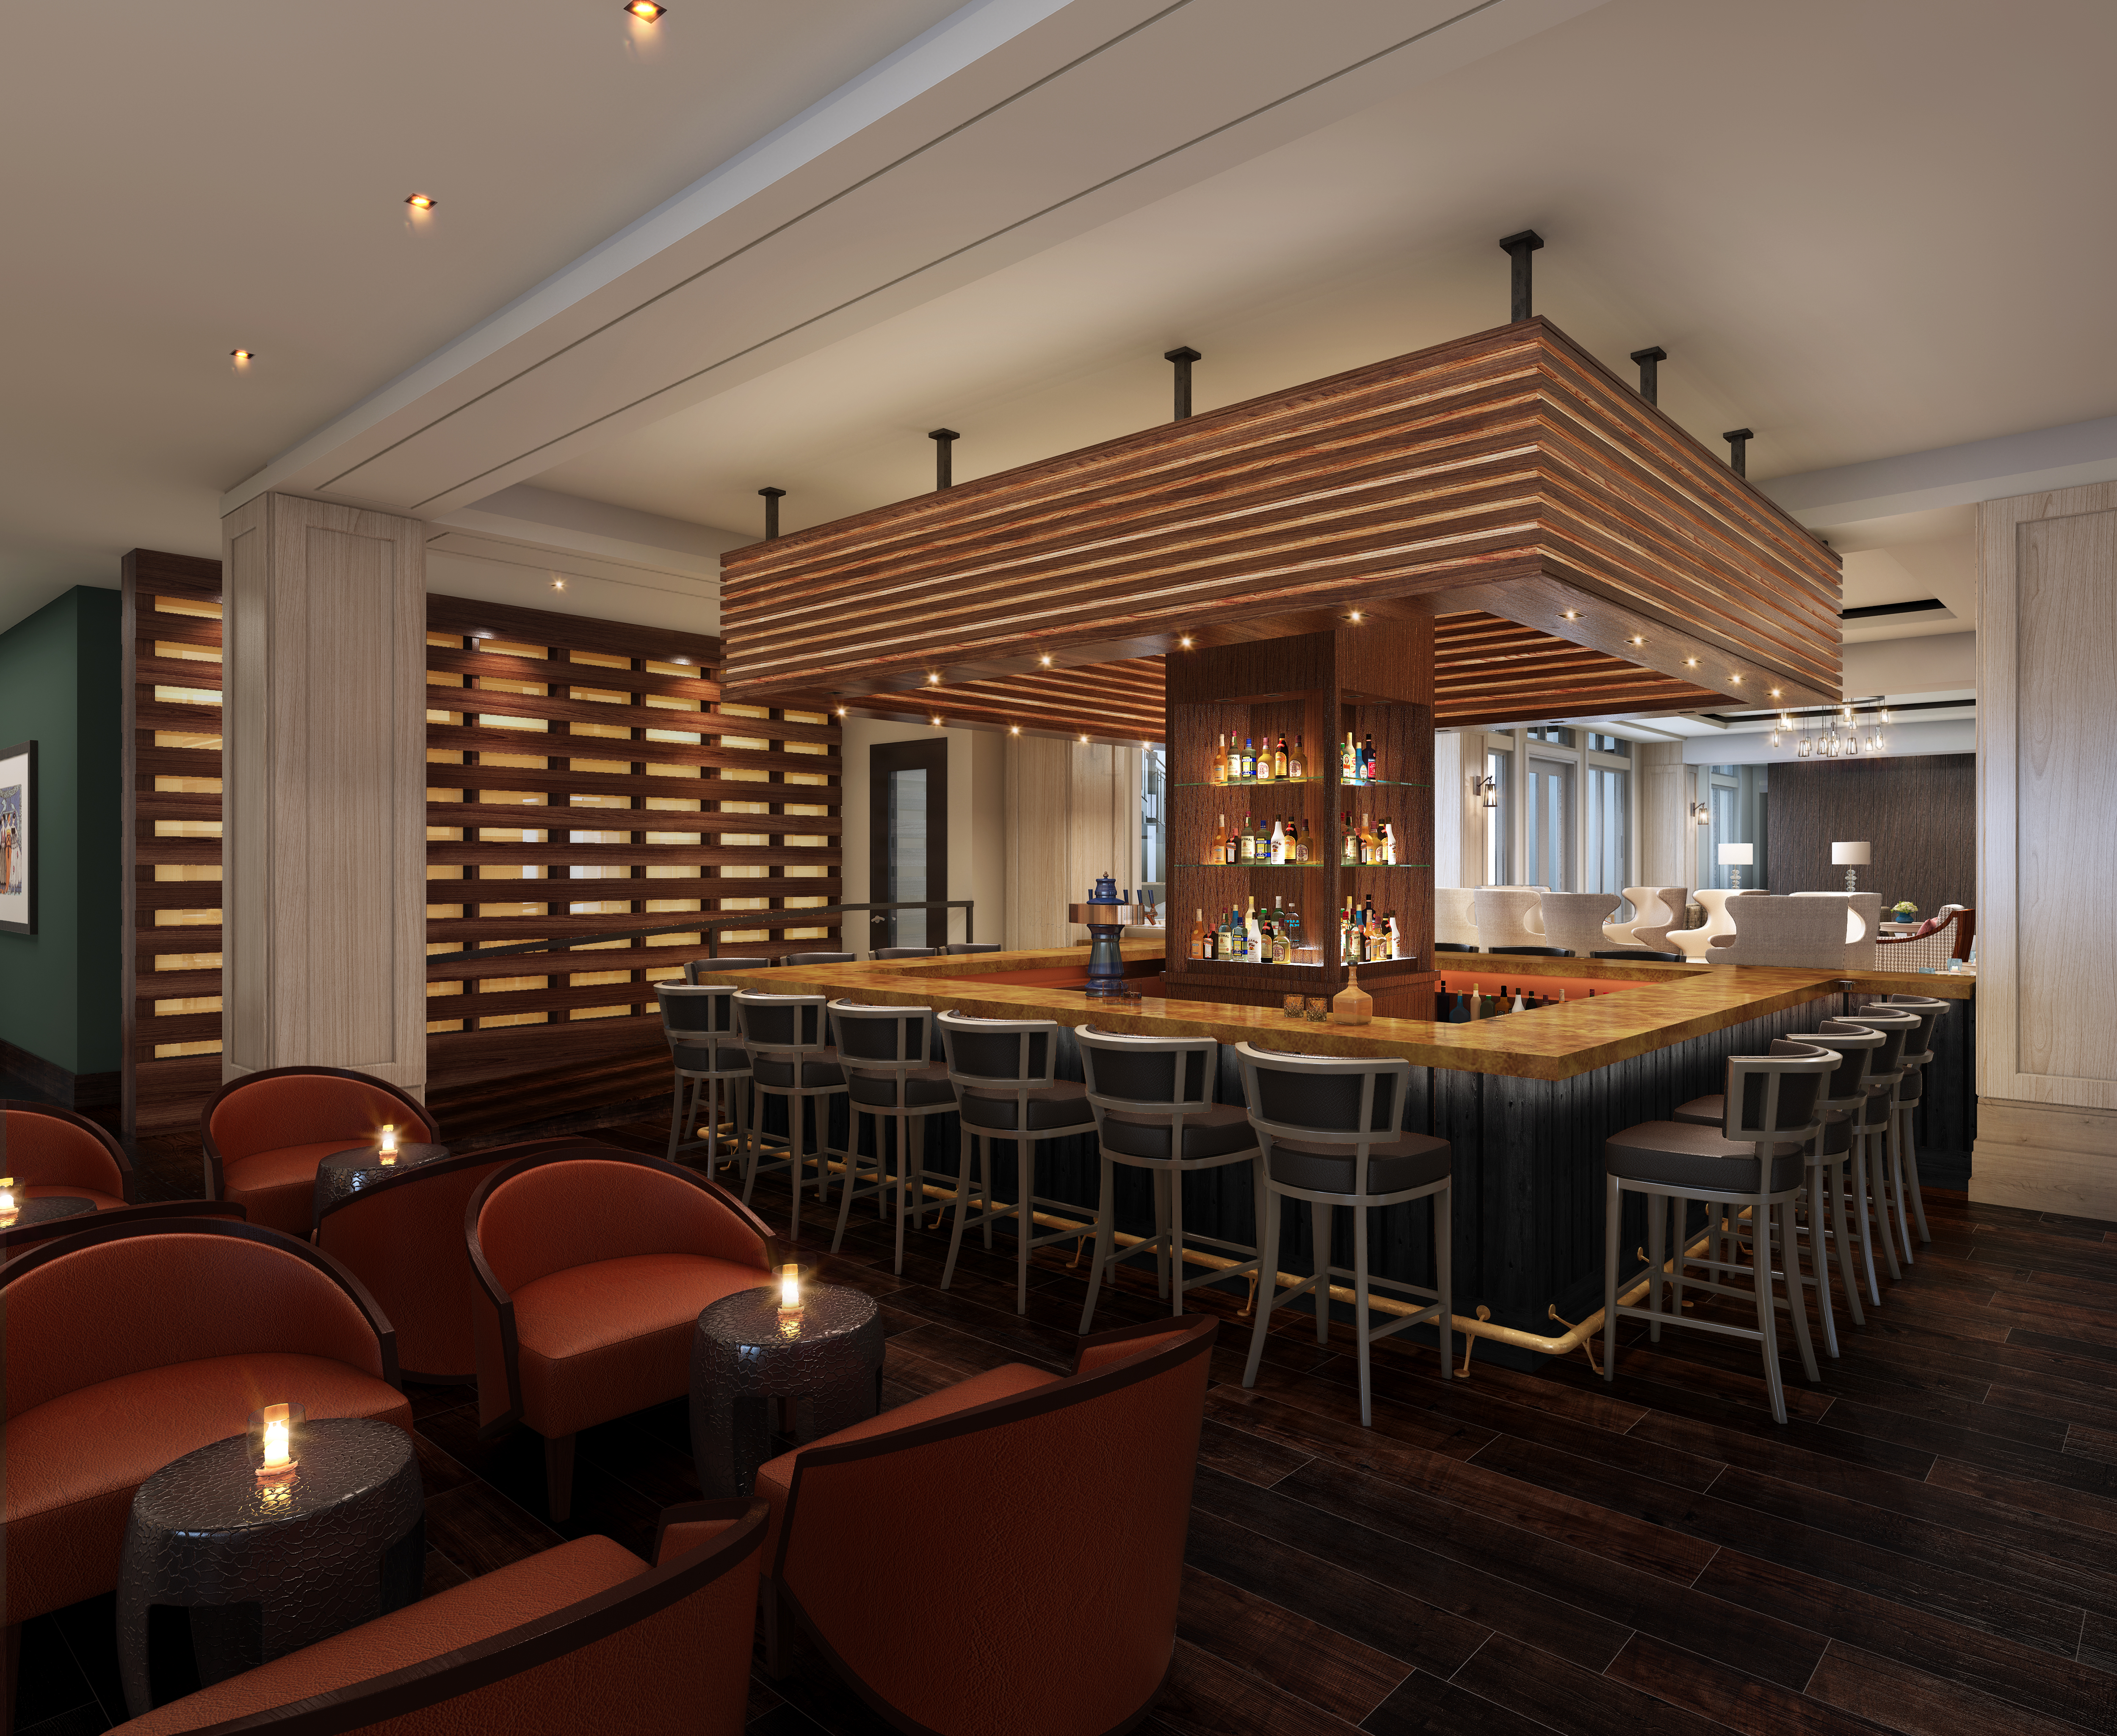 1799 Brings Date Night-Worthy Bourbon and Prime Steak to Franklin